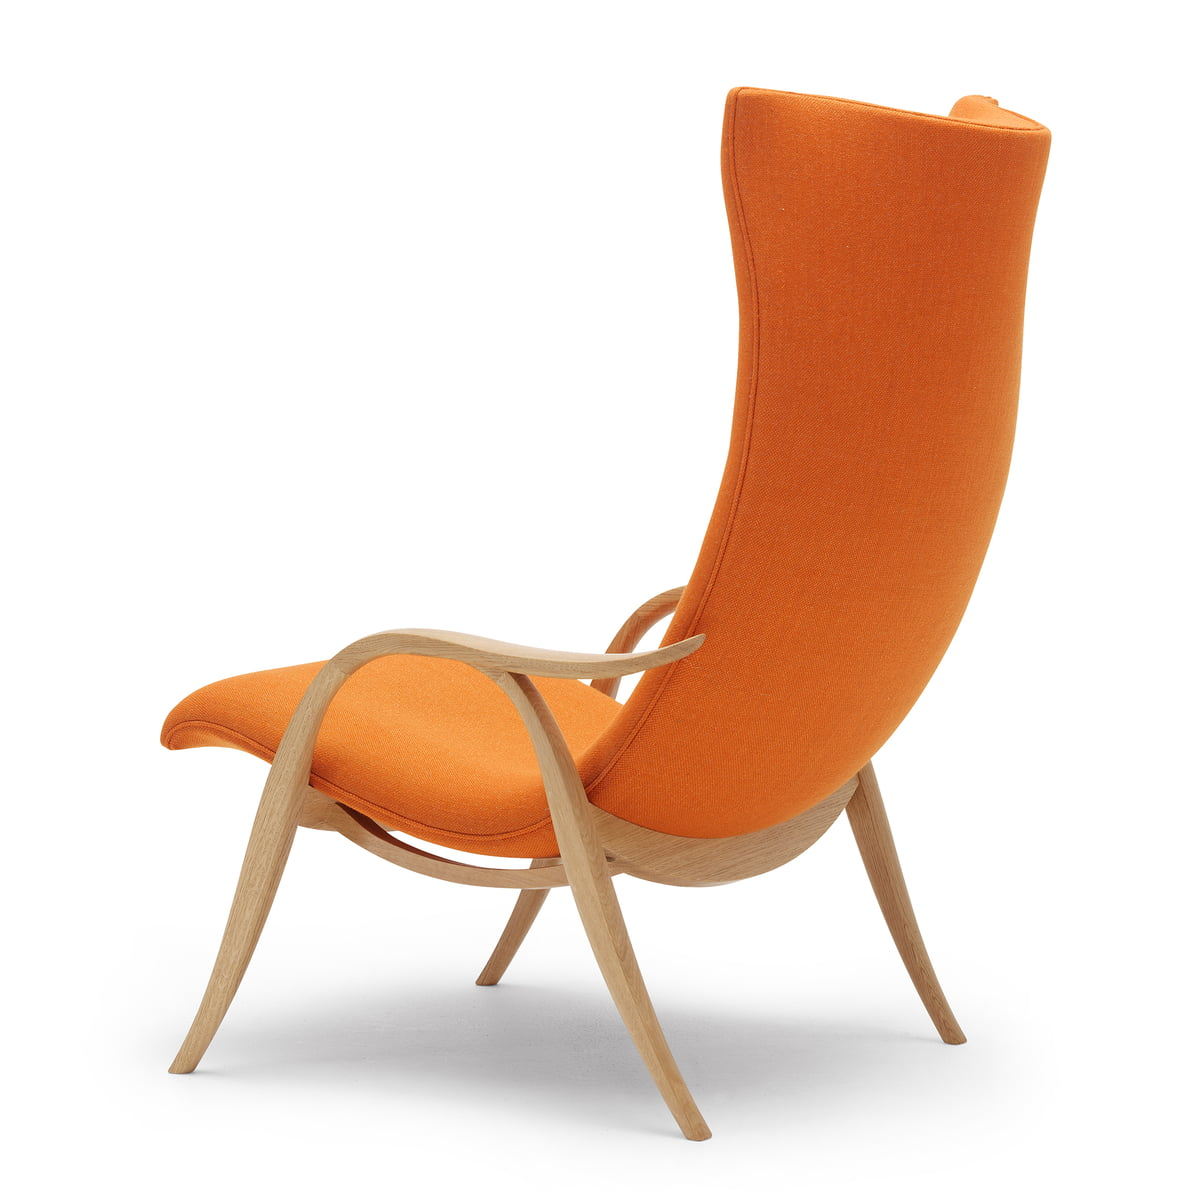 FH429 Signature Chair By Carl Hansen Made Of Oak Oiled In Sunniva 532